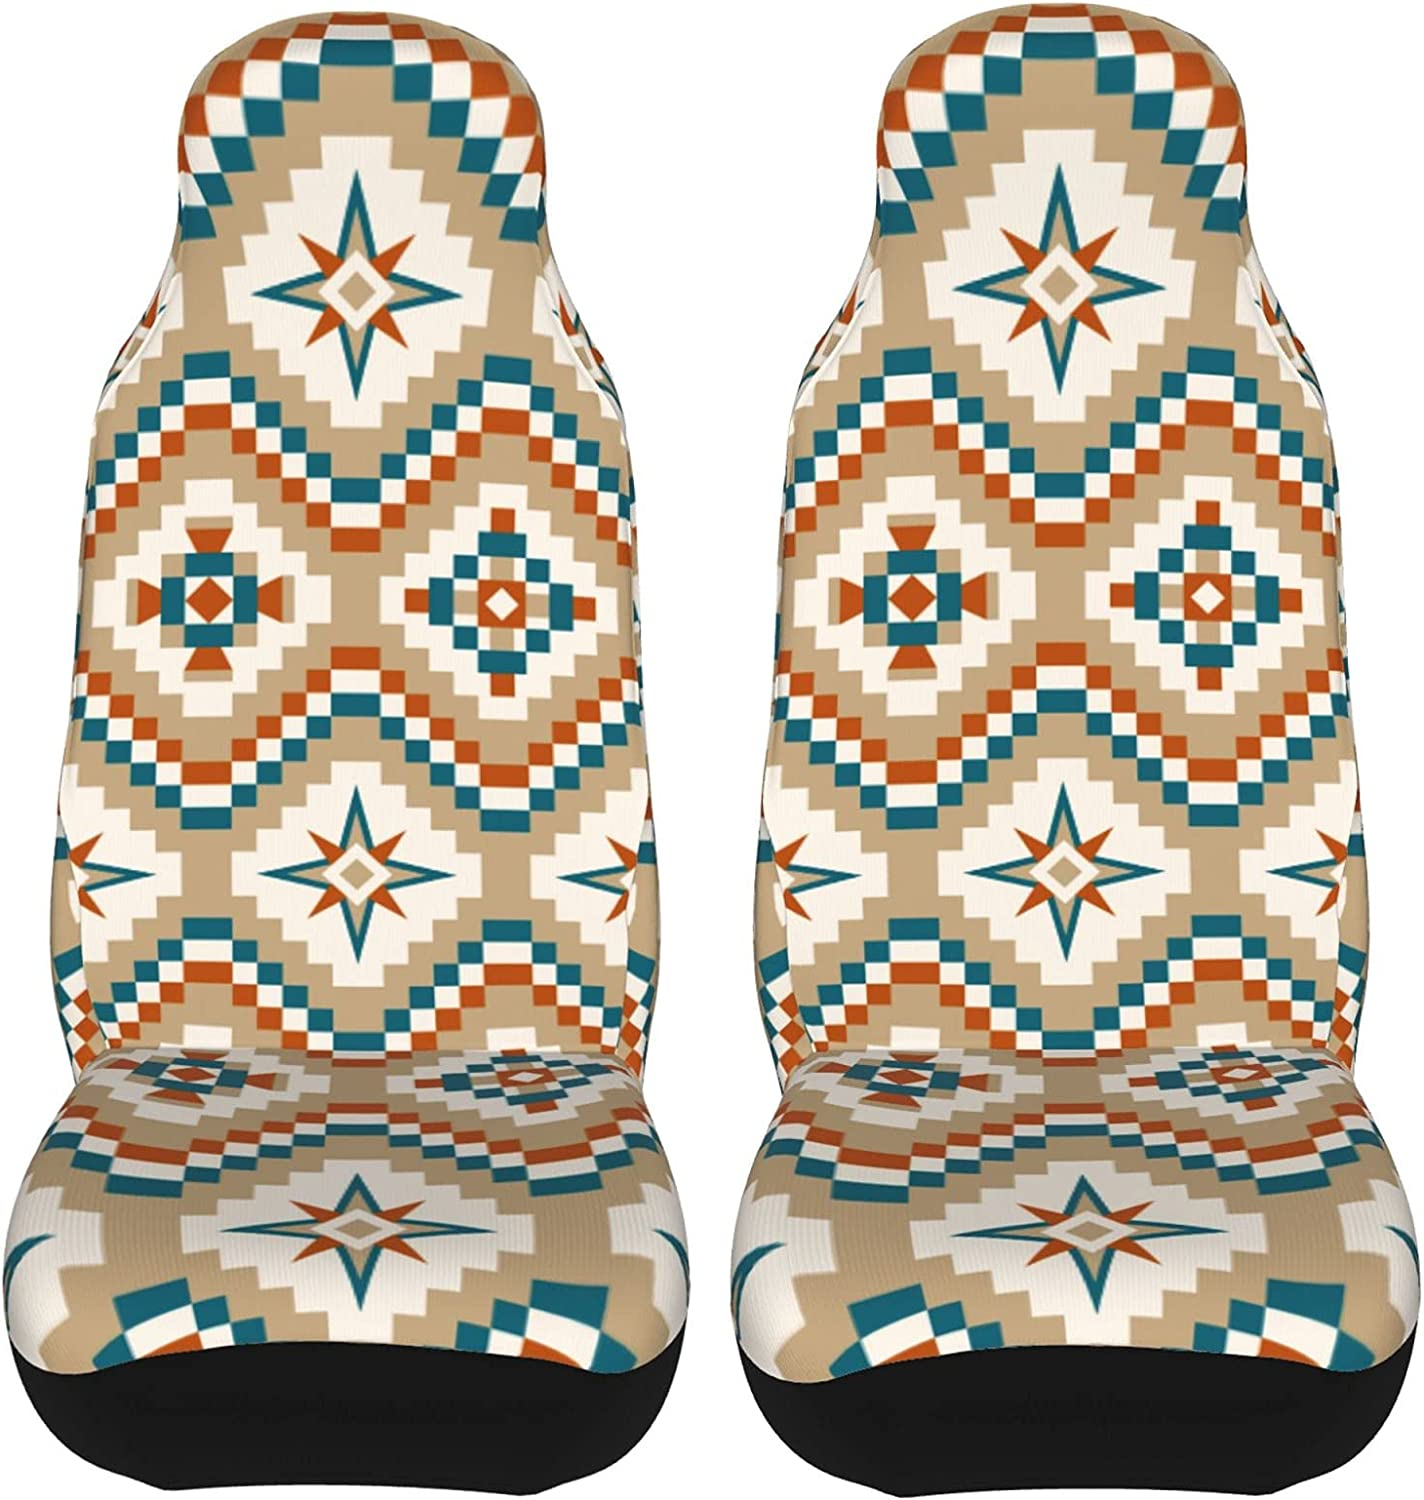 Burnt Orange Teal Tan Cream 2 Pcs Vehicle Seat Covers online shop All items in the store Fr Set Car